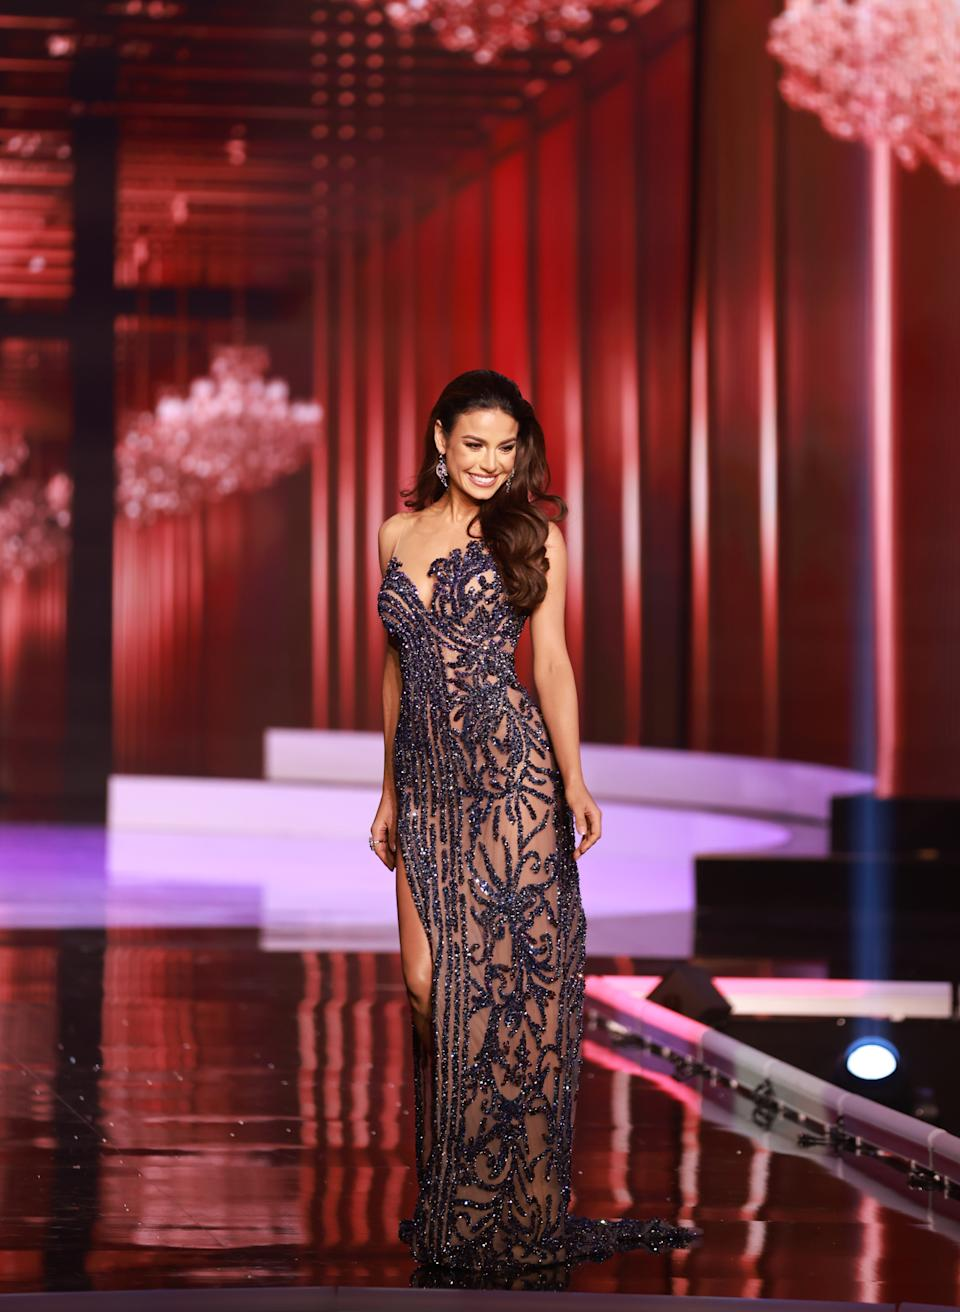 <p>Julia Gama, Miss Universe Brazil 2020 competes on stage as a Top 10 finalist in an evening gown of her choice during the 69th Miss Universe Competition on May 16, 2021 at the Seminole Hard Rock Hotel & Casino in Hollywood, Florida airing LIVE on FYI and Telemundo. Contestants from around the globe have spent the last few weeks touring, filming, rehearsing and preparing to compete for the Miss Universe crown. (PHOTO: Miss Universe)</p>